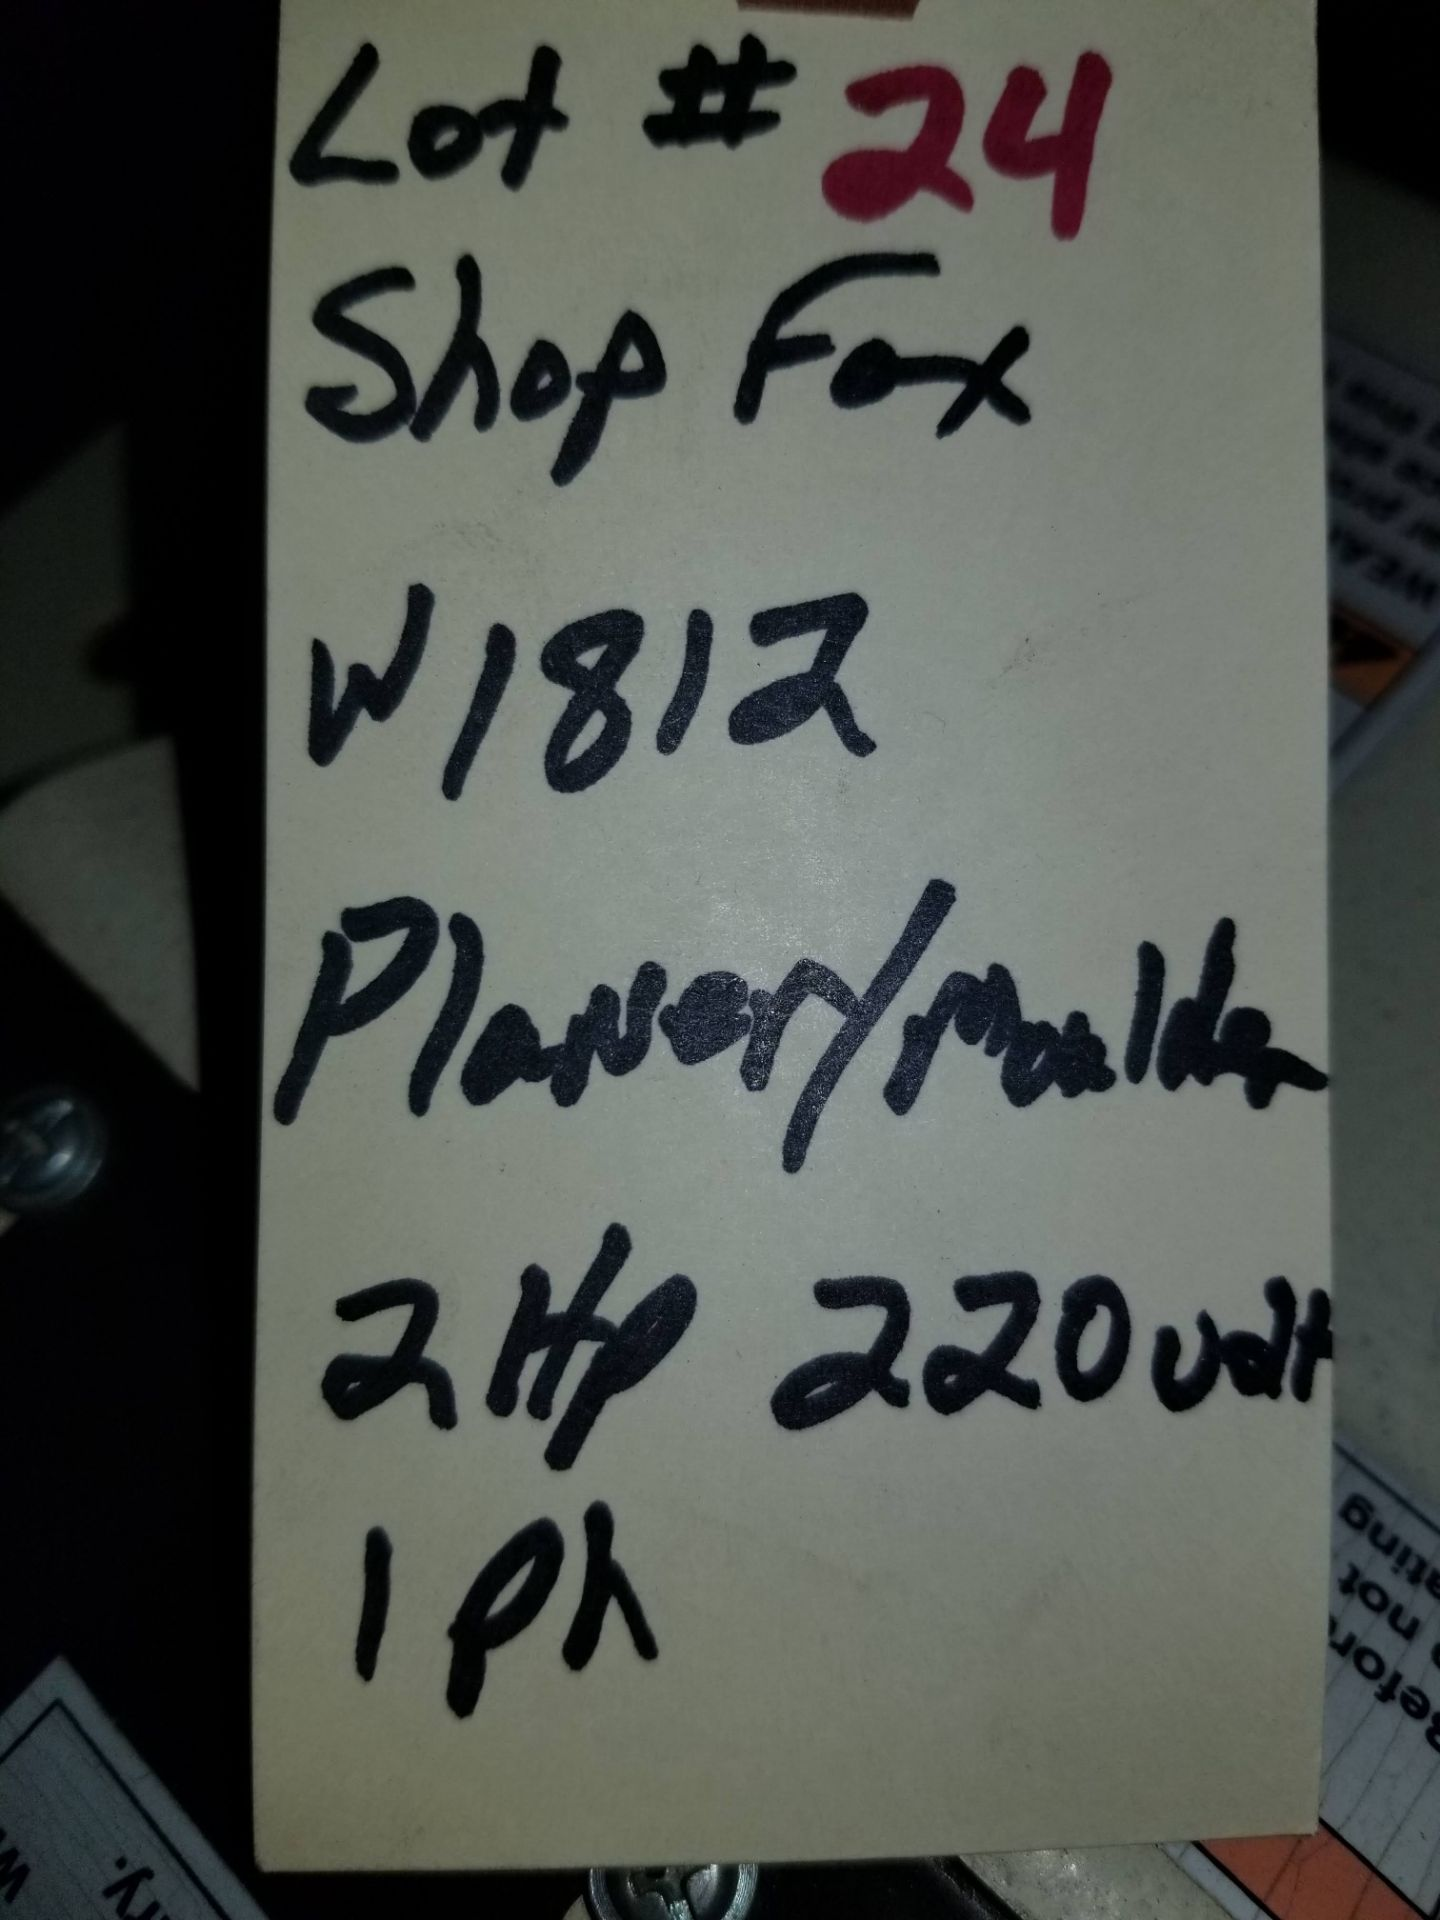 "Lot 24 - Shop Fox - 2 HP 7"" Planer / Moulder with Stand W1812, 2hp 220V 1ph,"